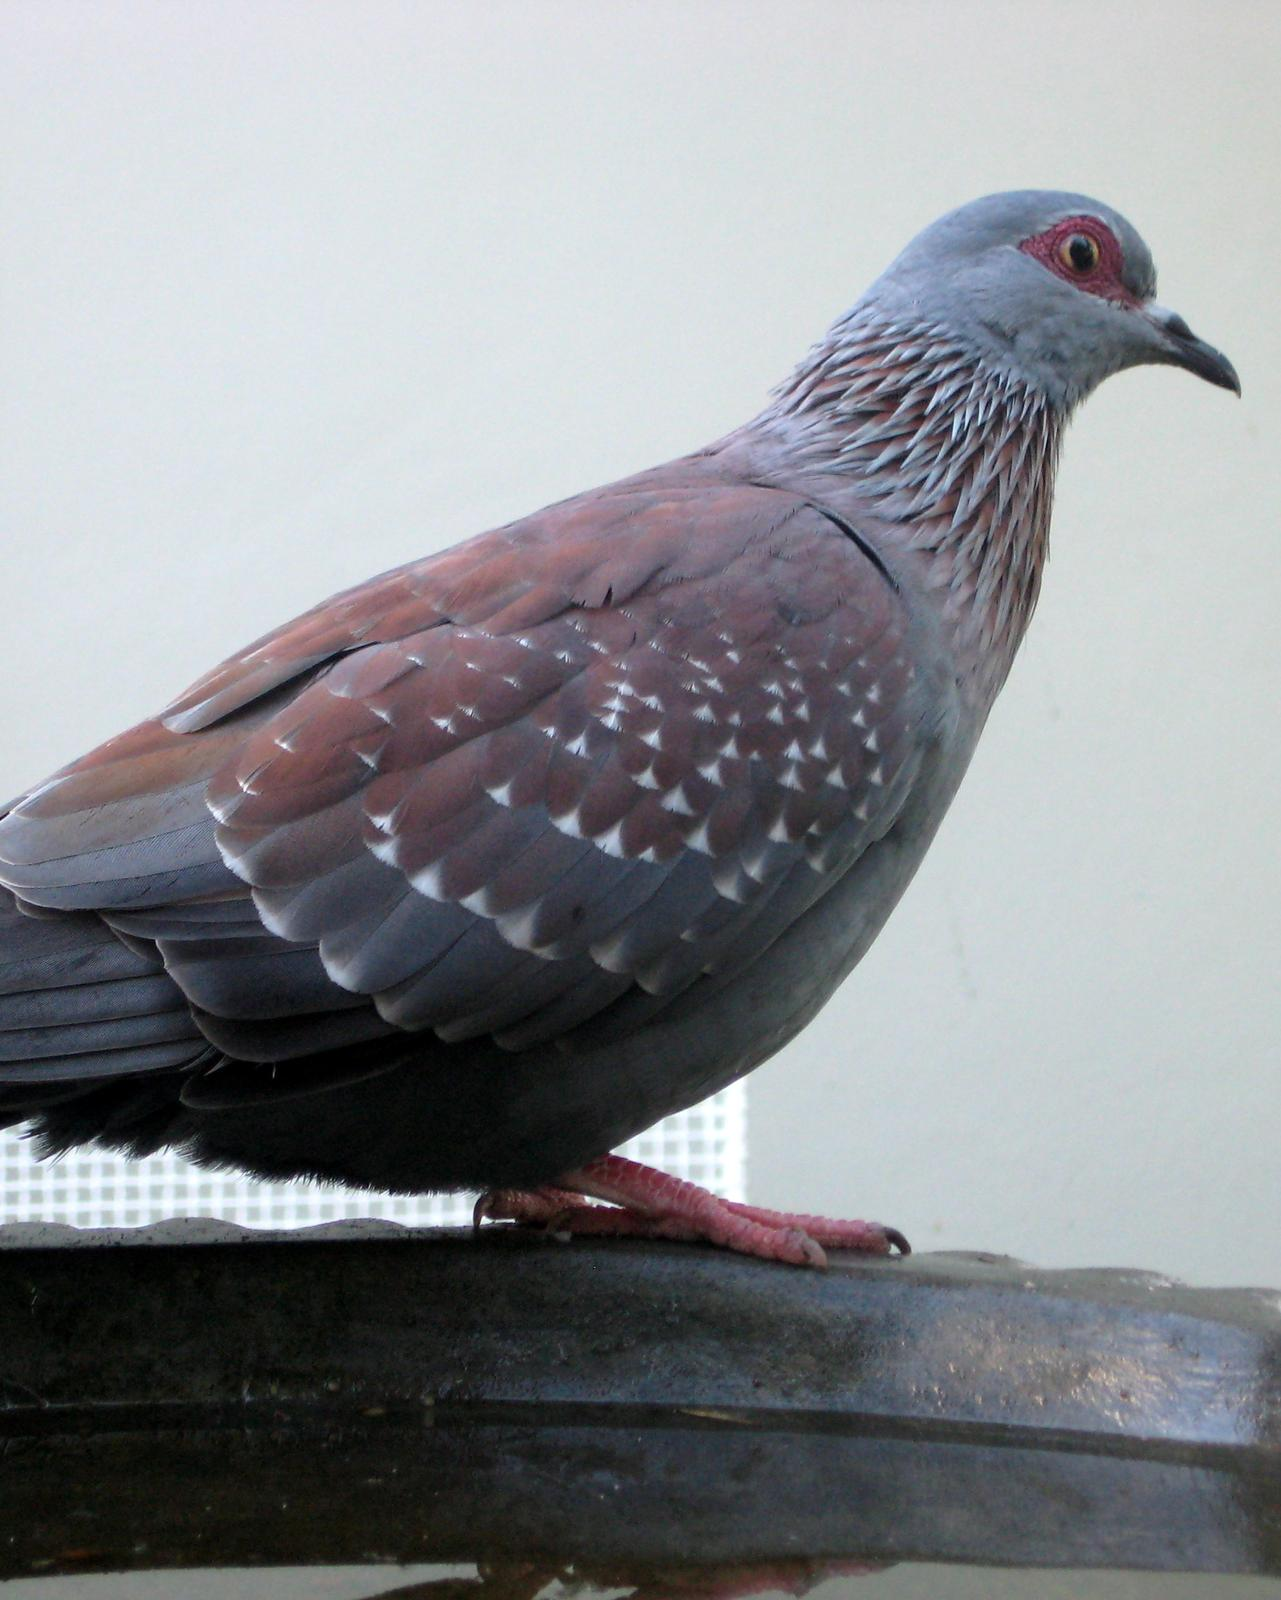 Speckled Pigeon Photo by Peter Lowe